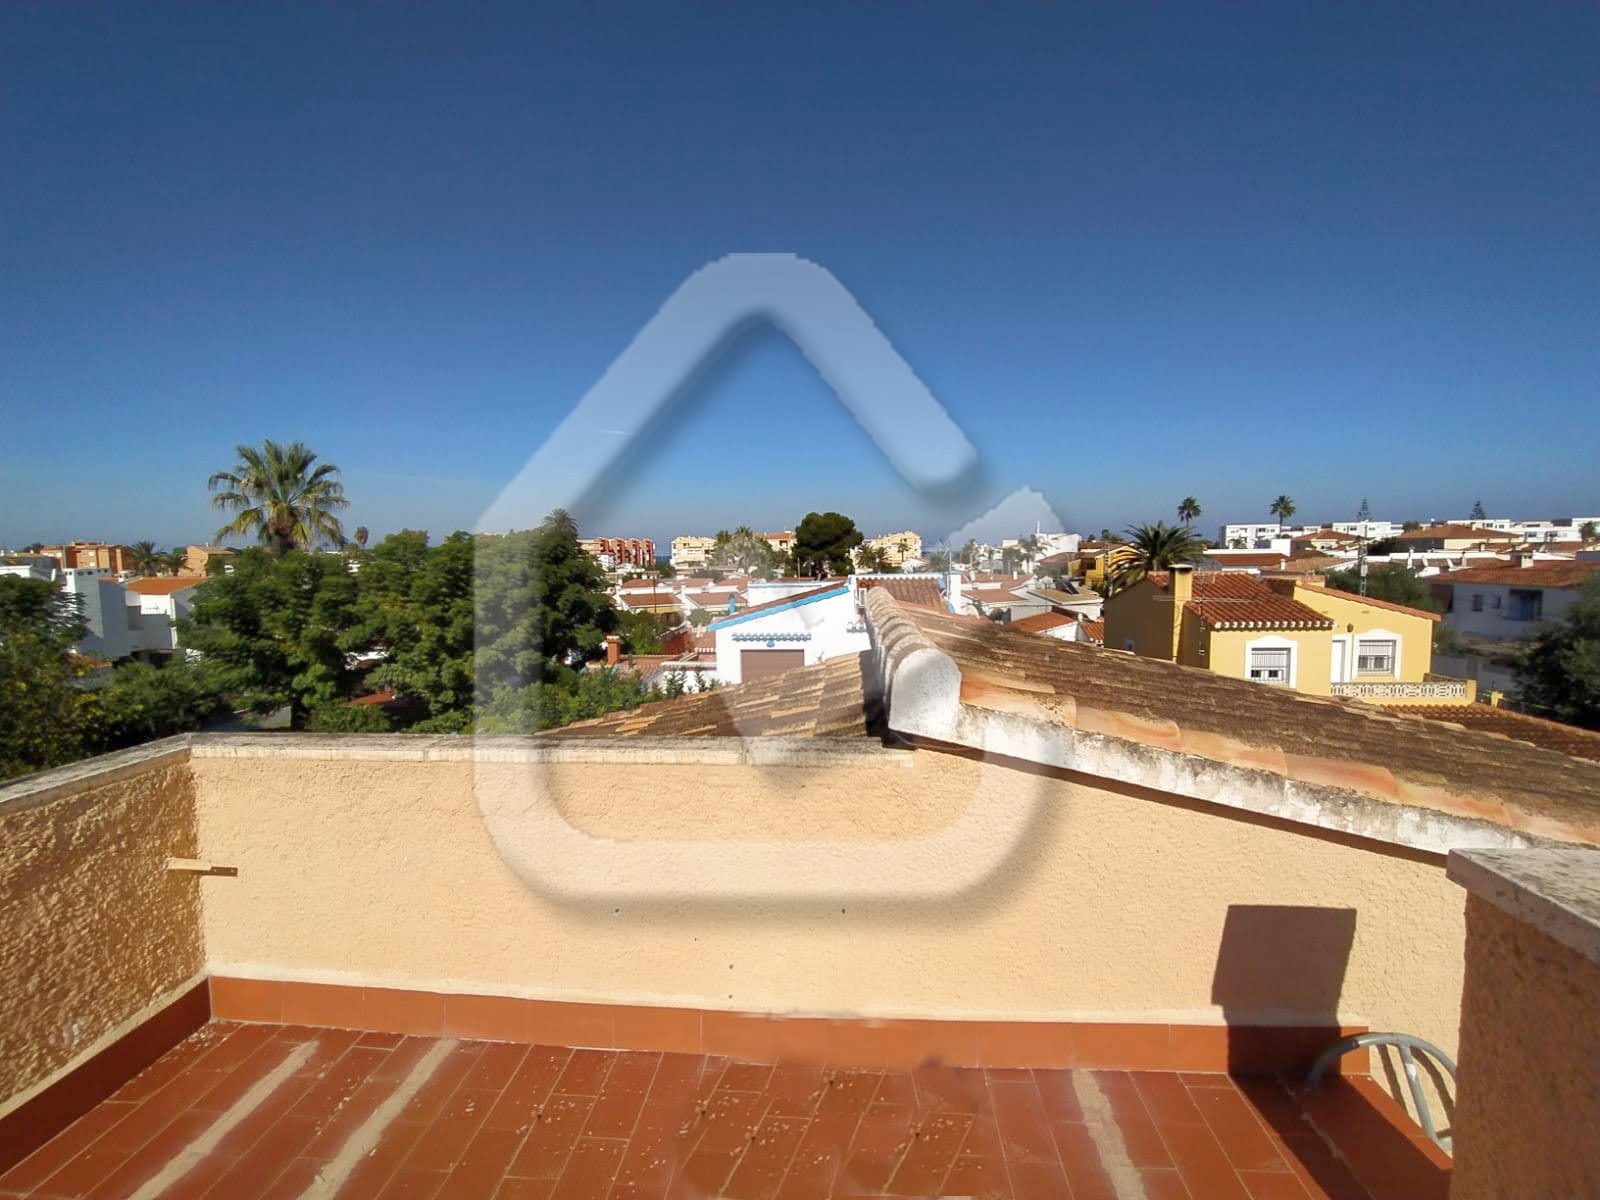 Photo  number 29: Villa in Sale in Denia, Area Marinas, Sector Bassetes-bovetes. Ref. 5-36-14957